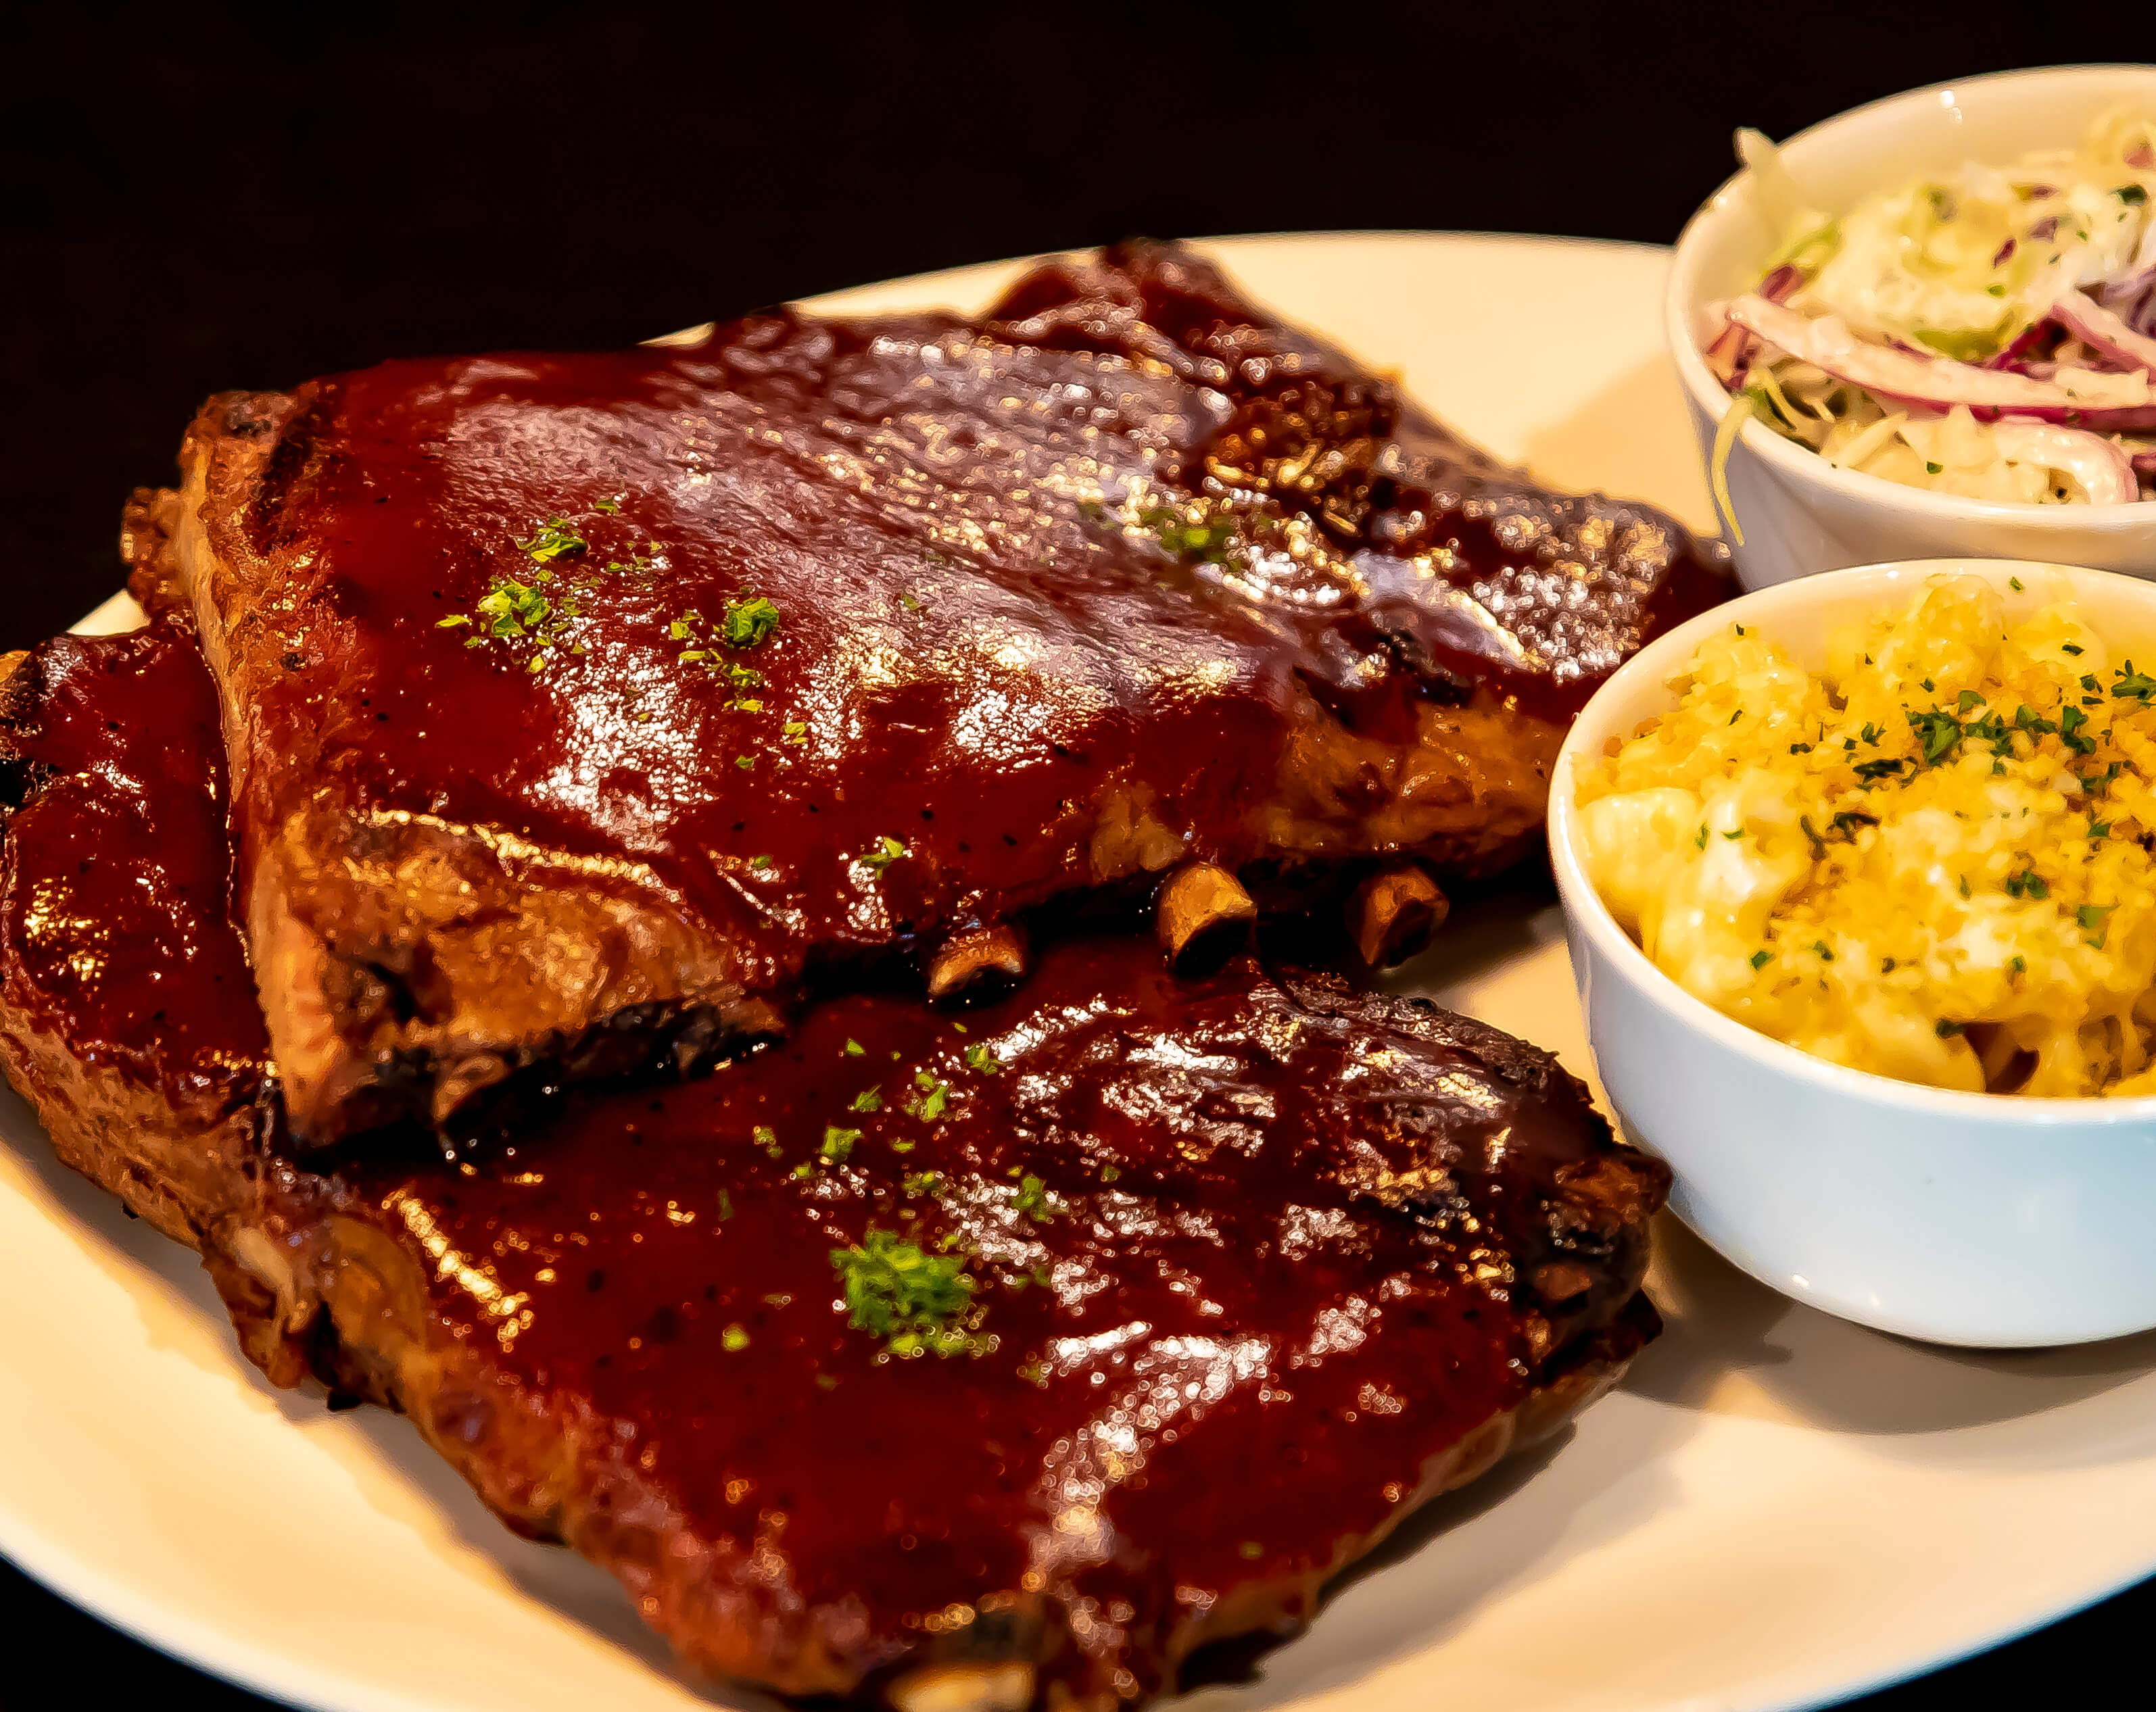 BBQ ribs on plate